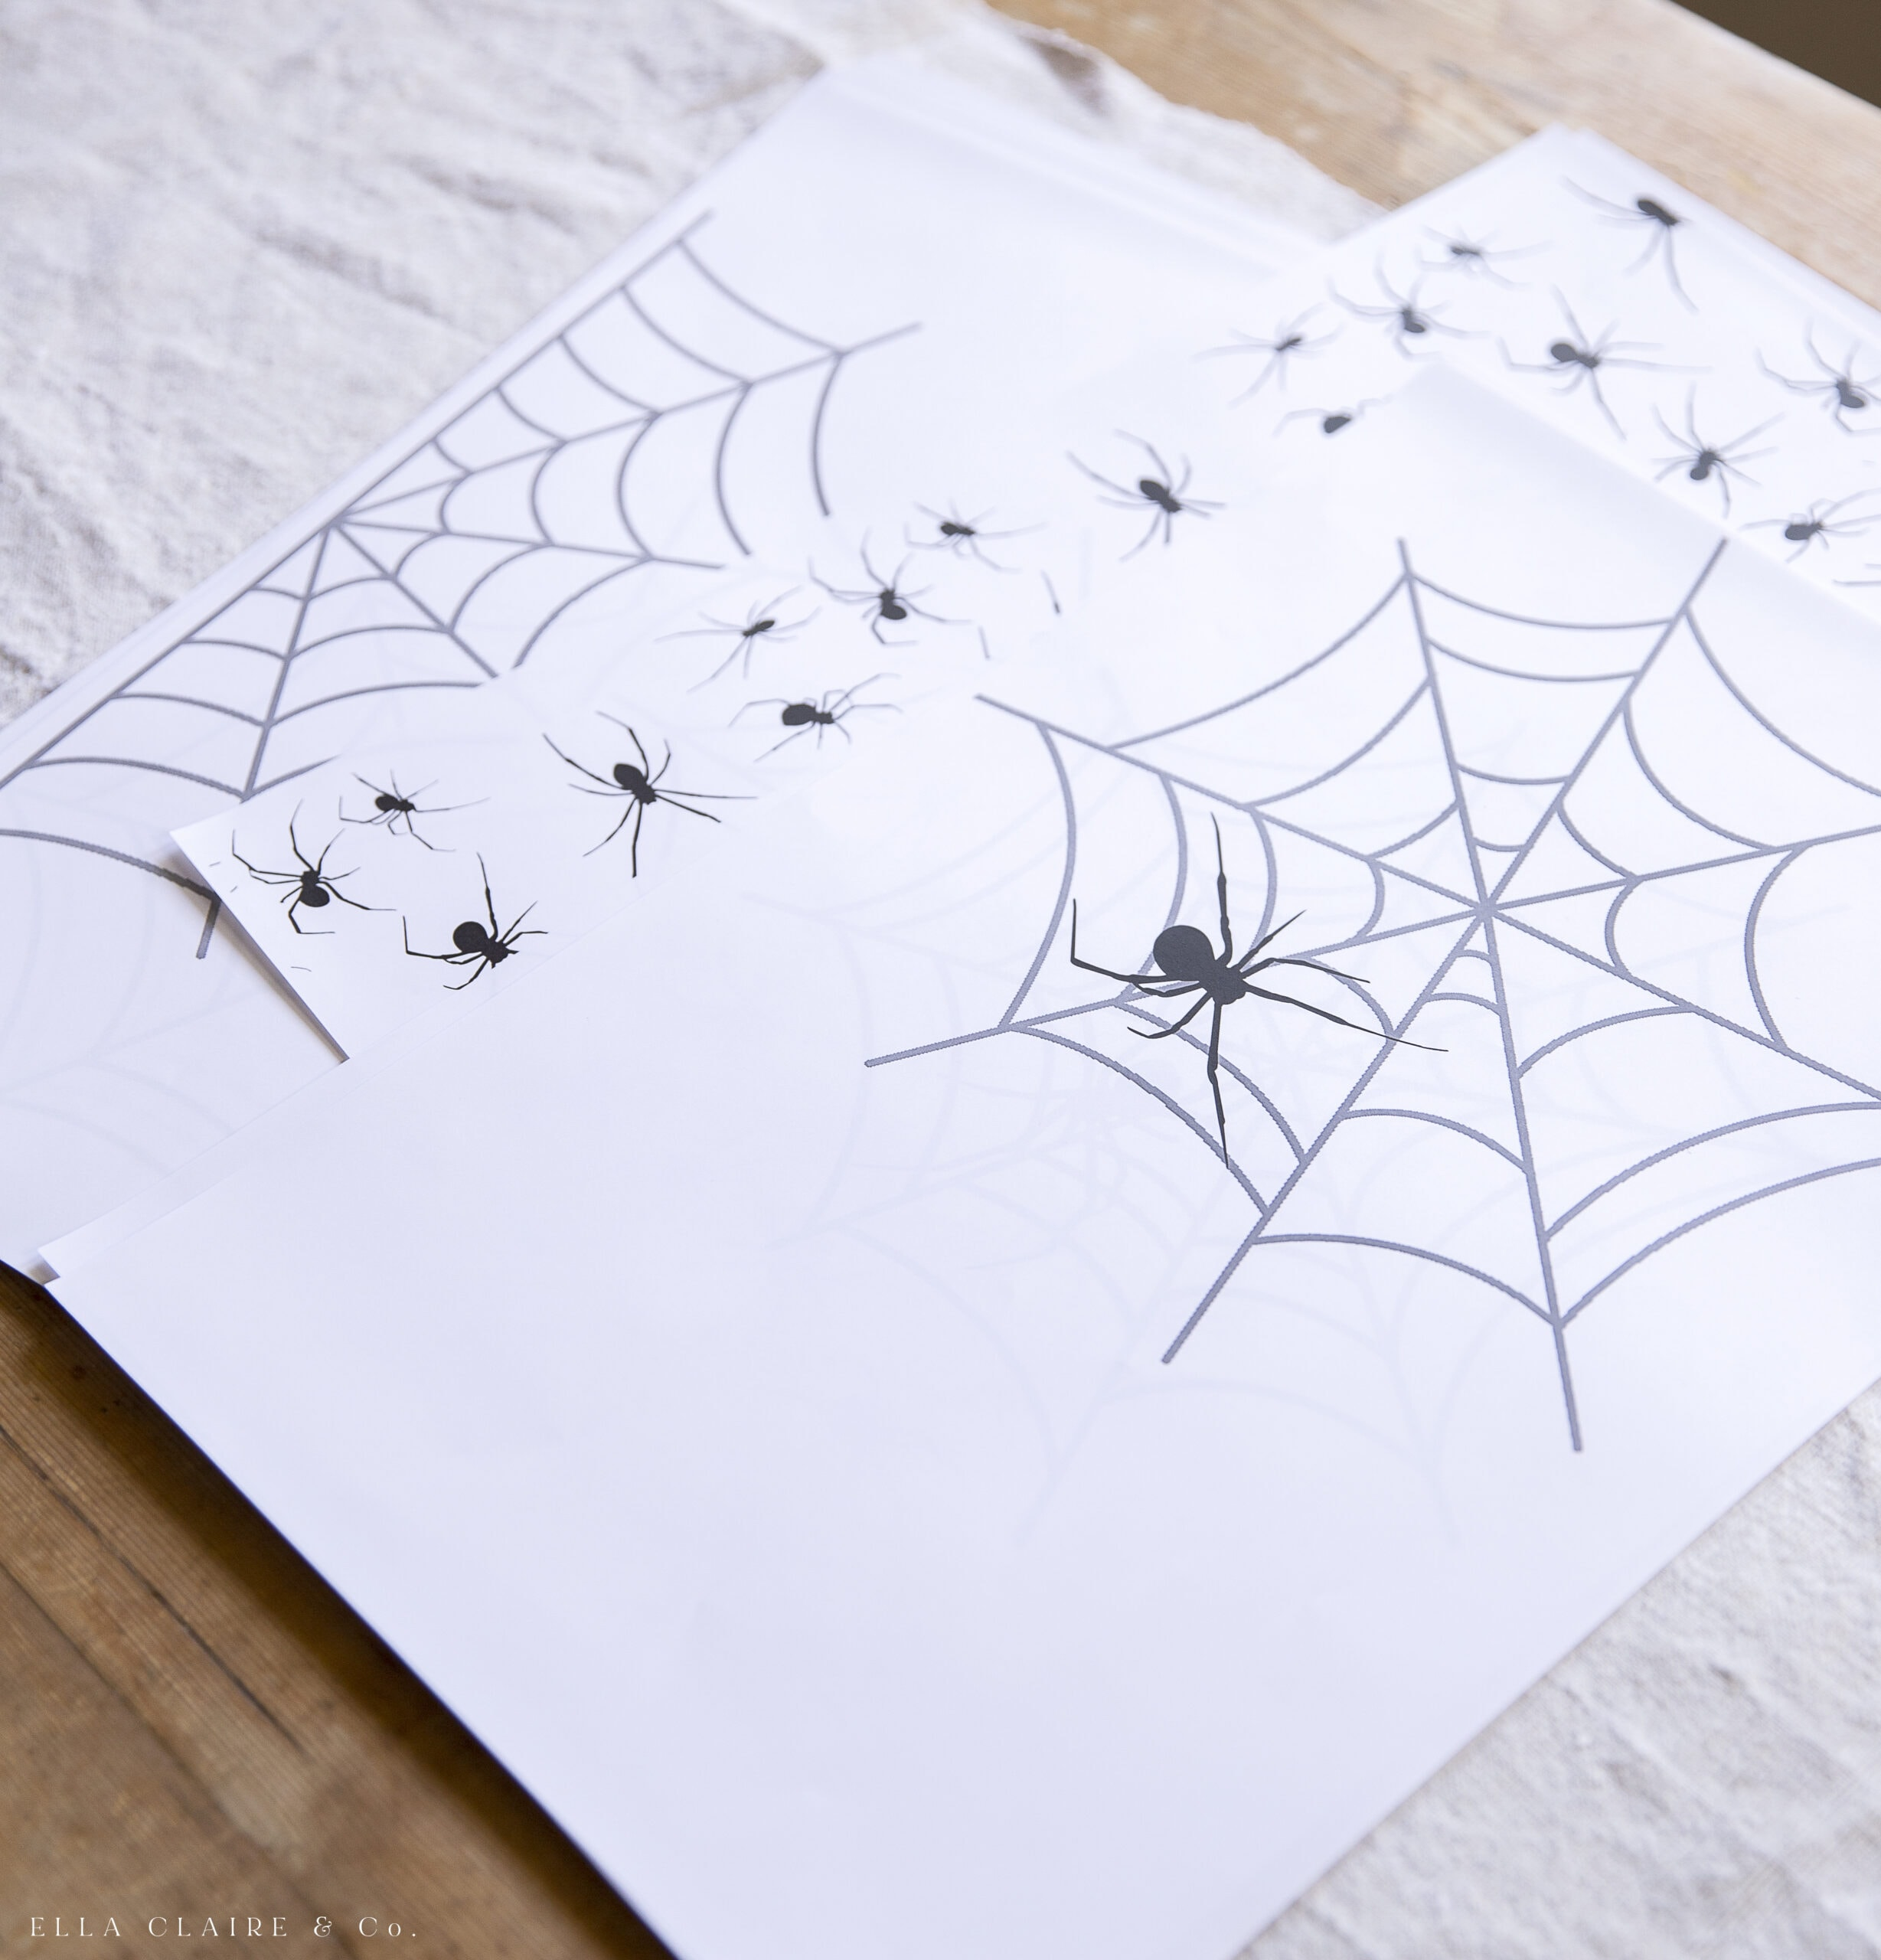 printed sheets with spiders and webs